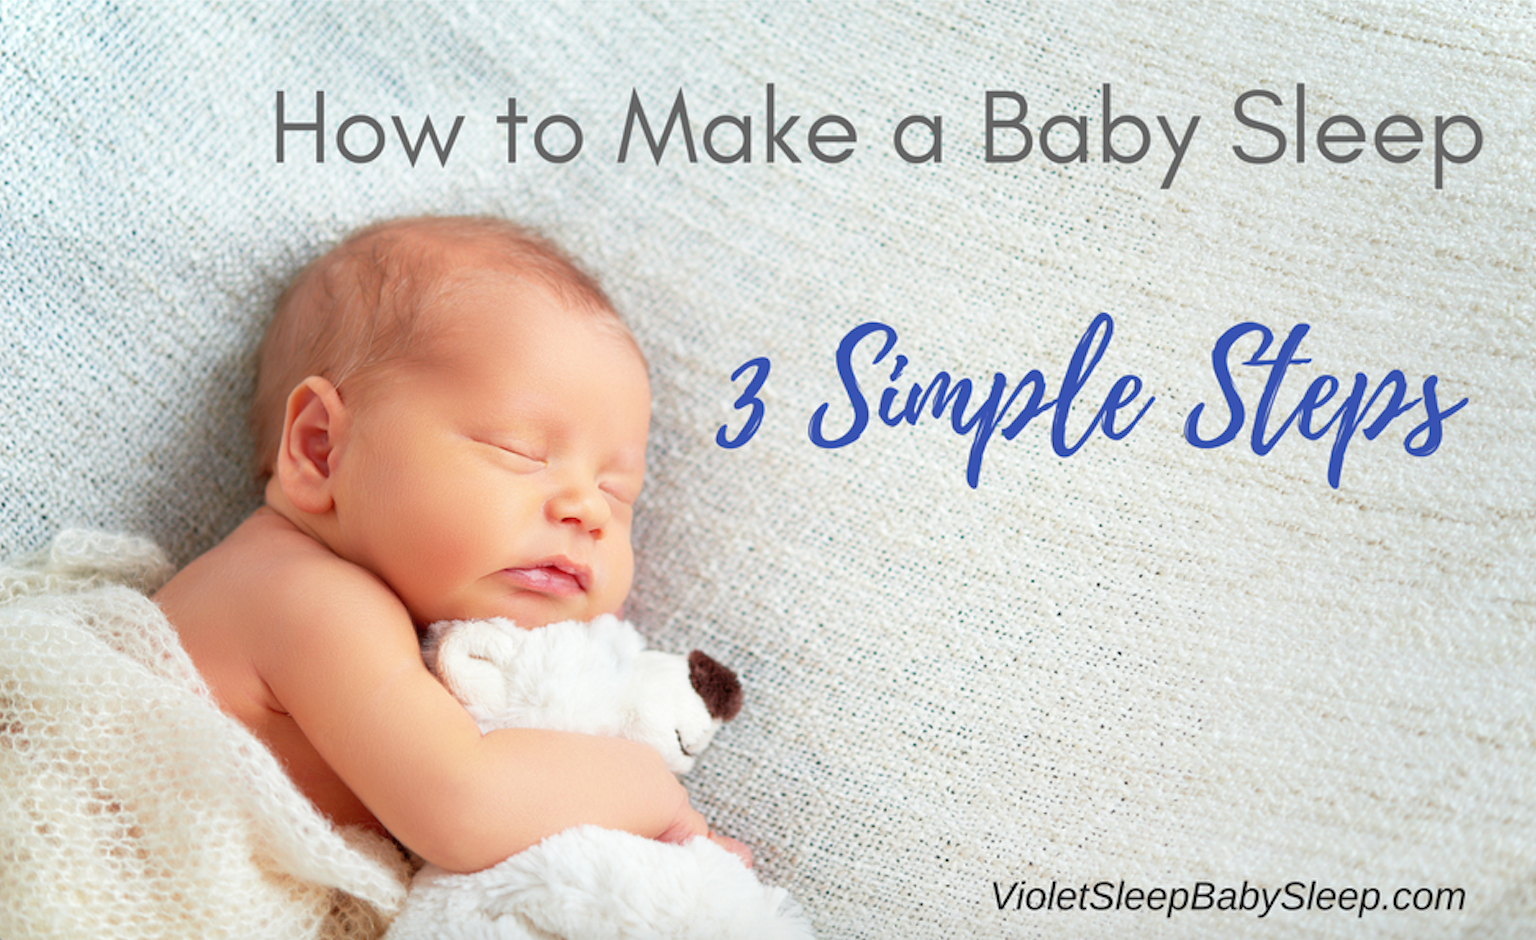 How to make a baby sleep